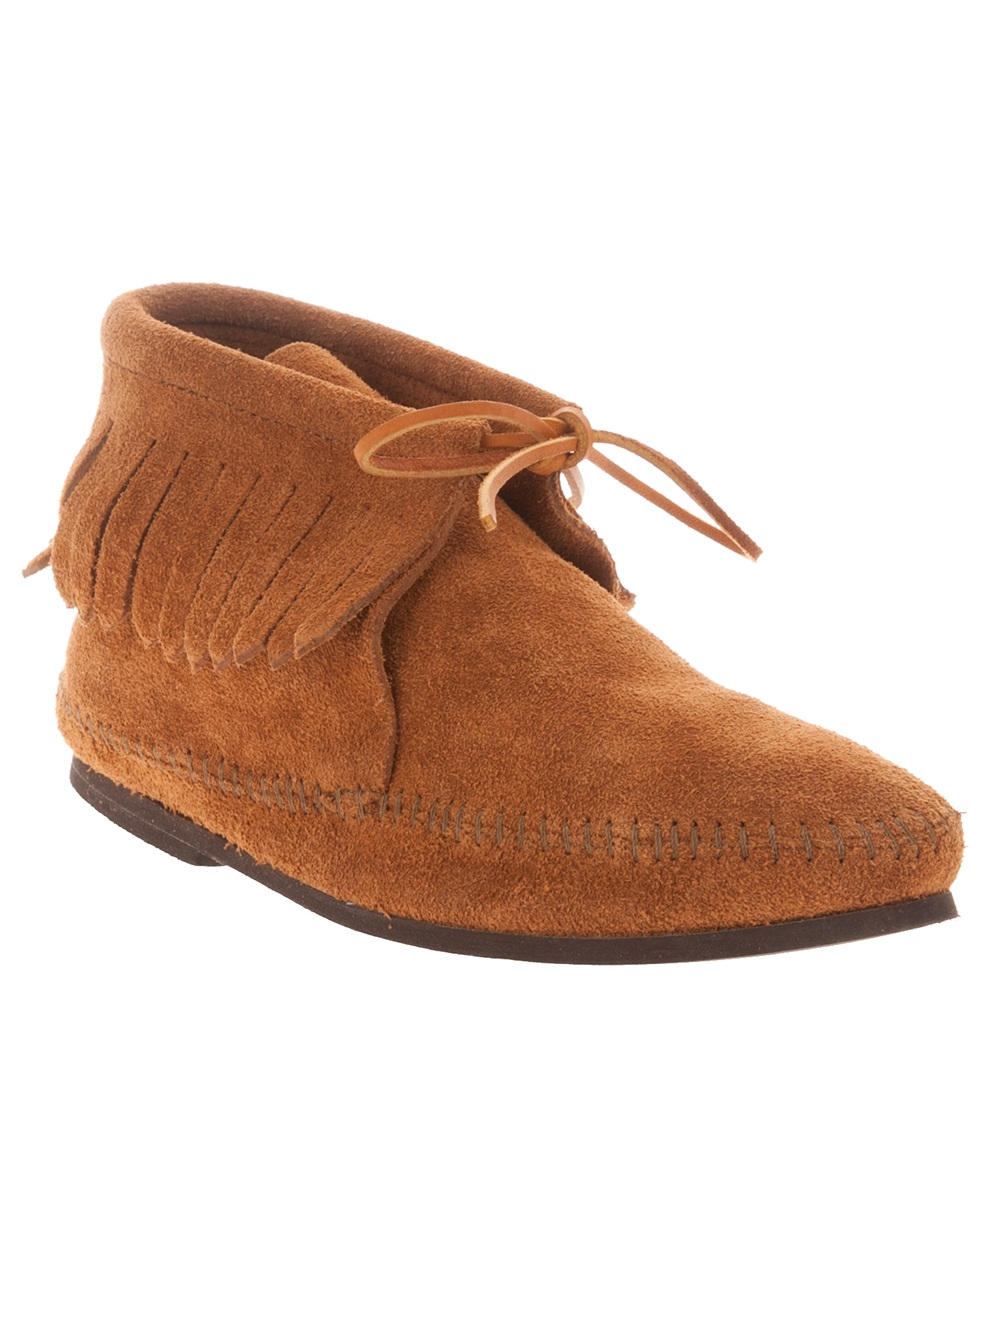 minnetonka suede moccasin boot in brown for lyst